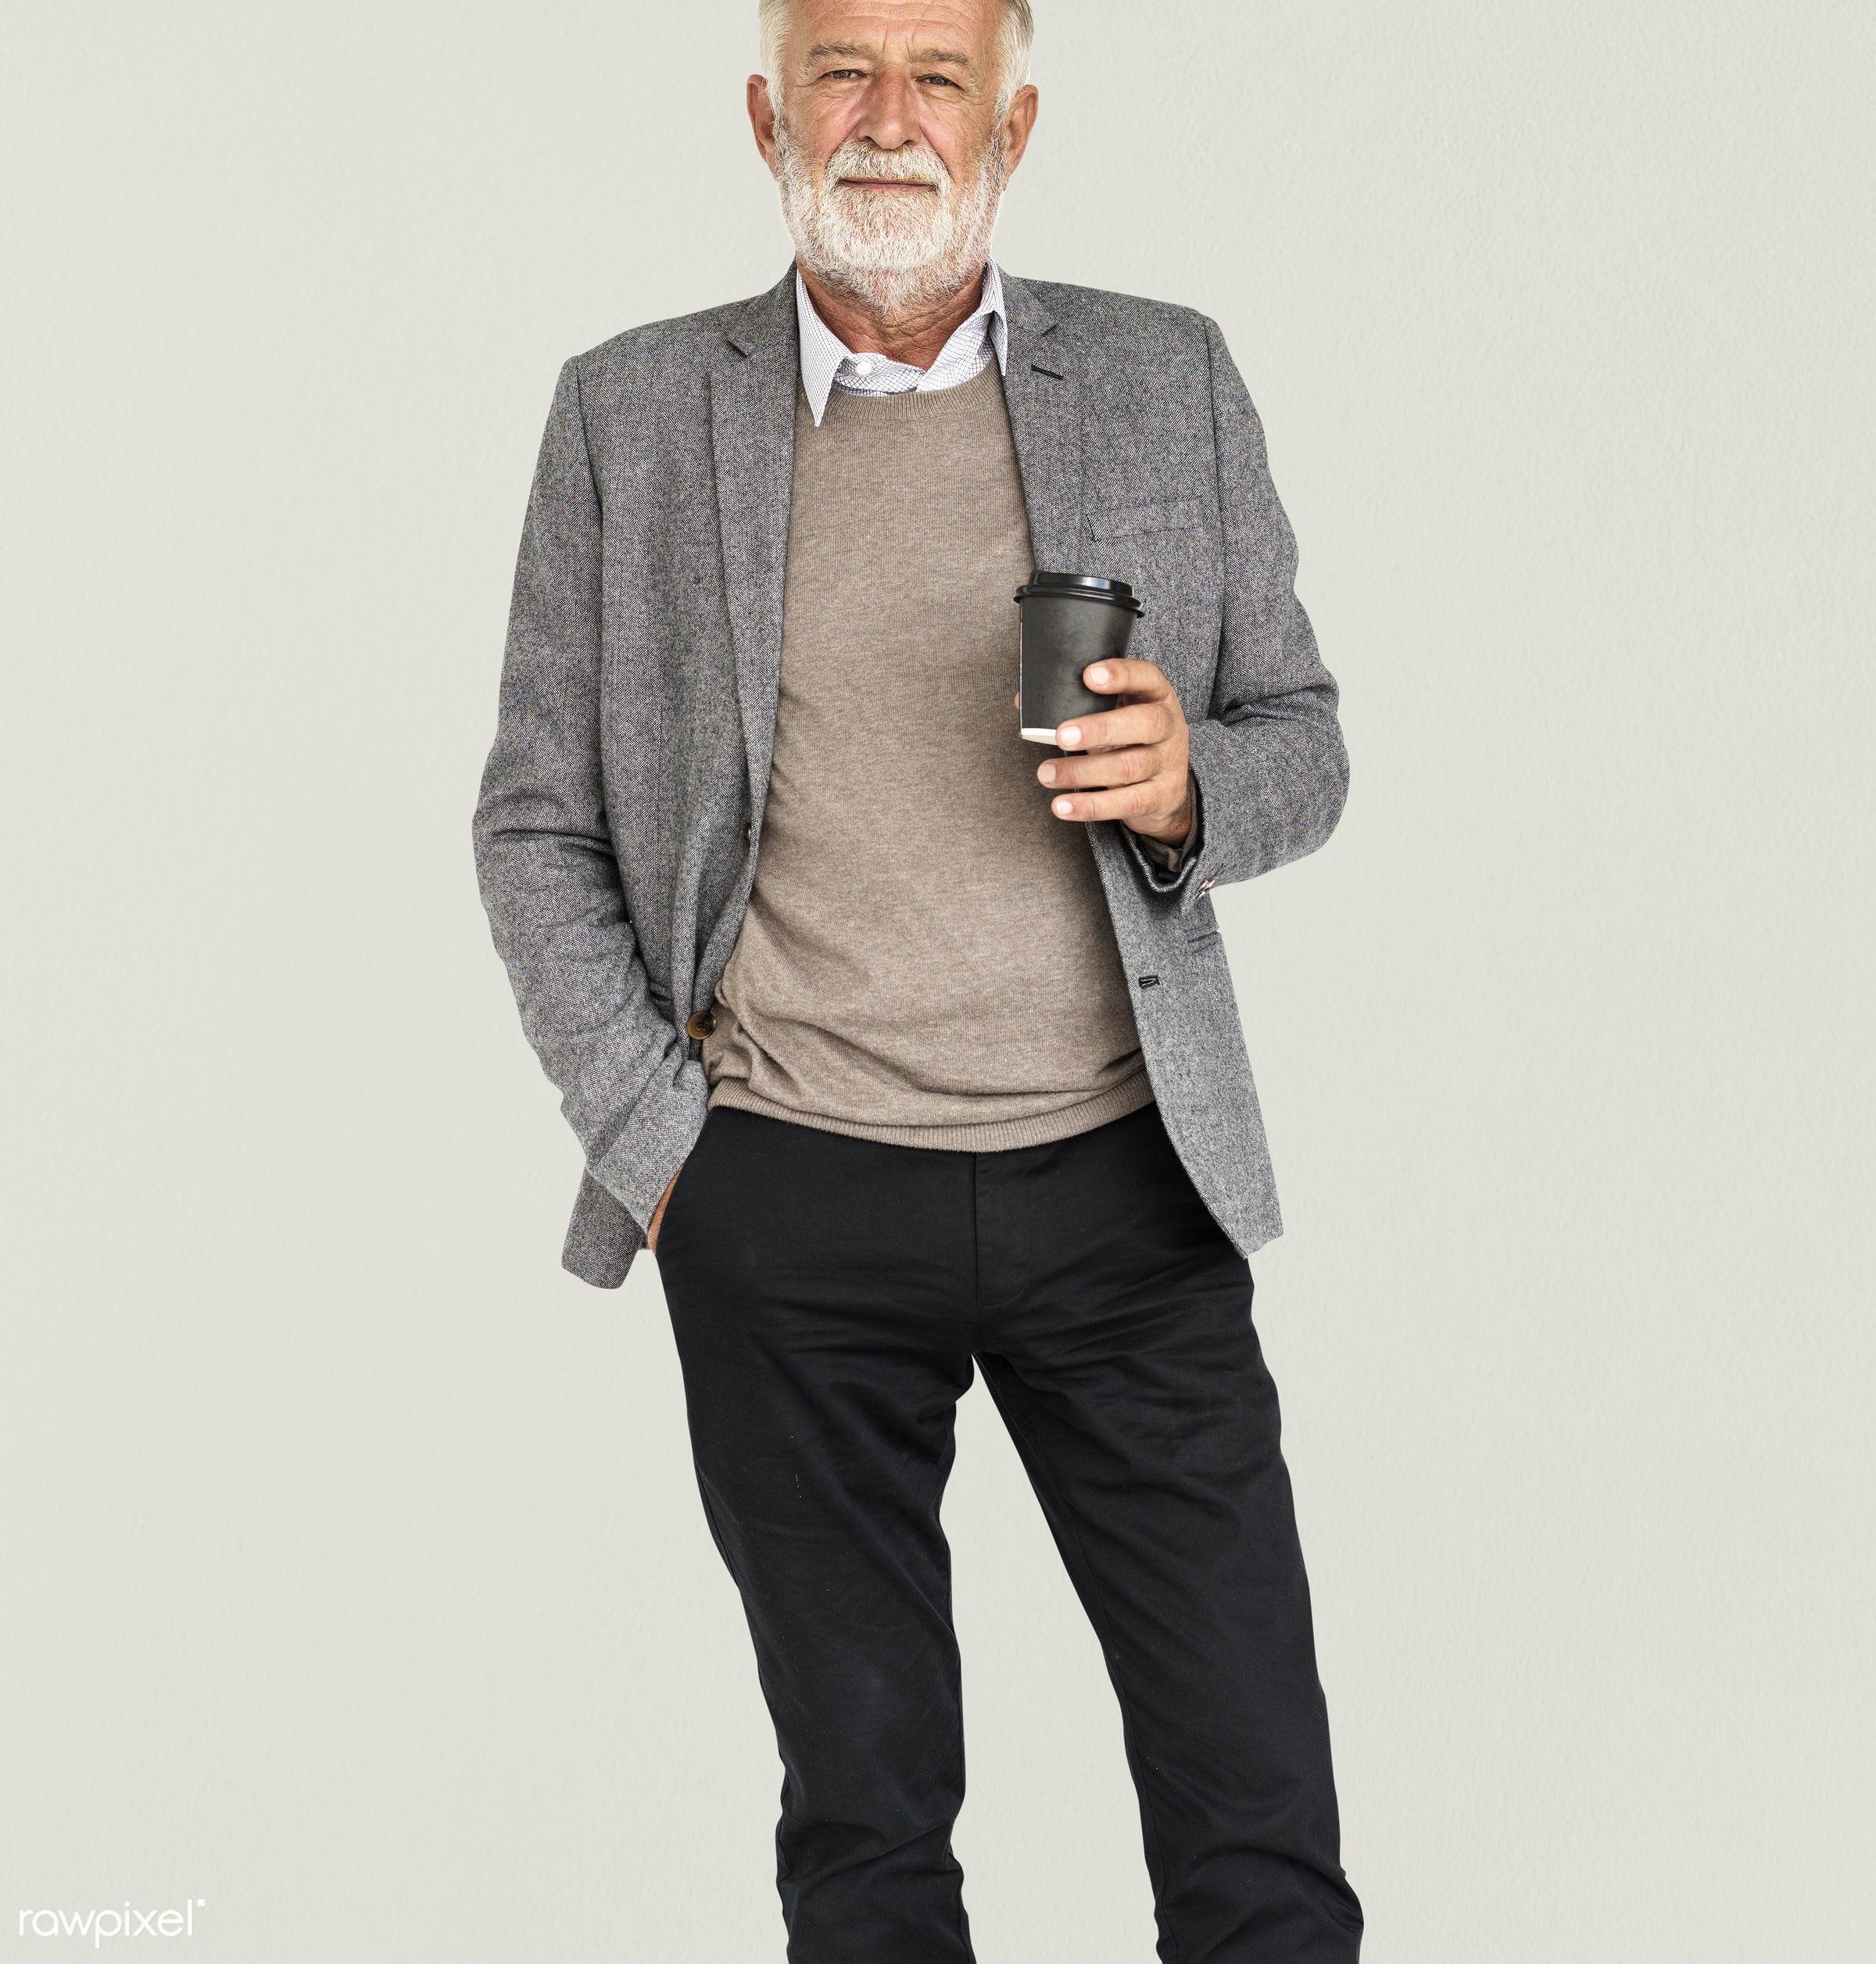 expression, studio, old, person, people, caucasian, pose, smile, positive, smiling, man, formal attire, isolated, formal...